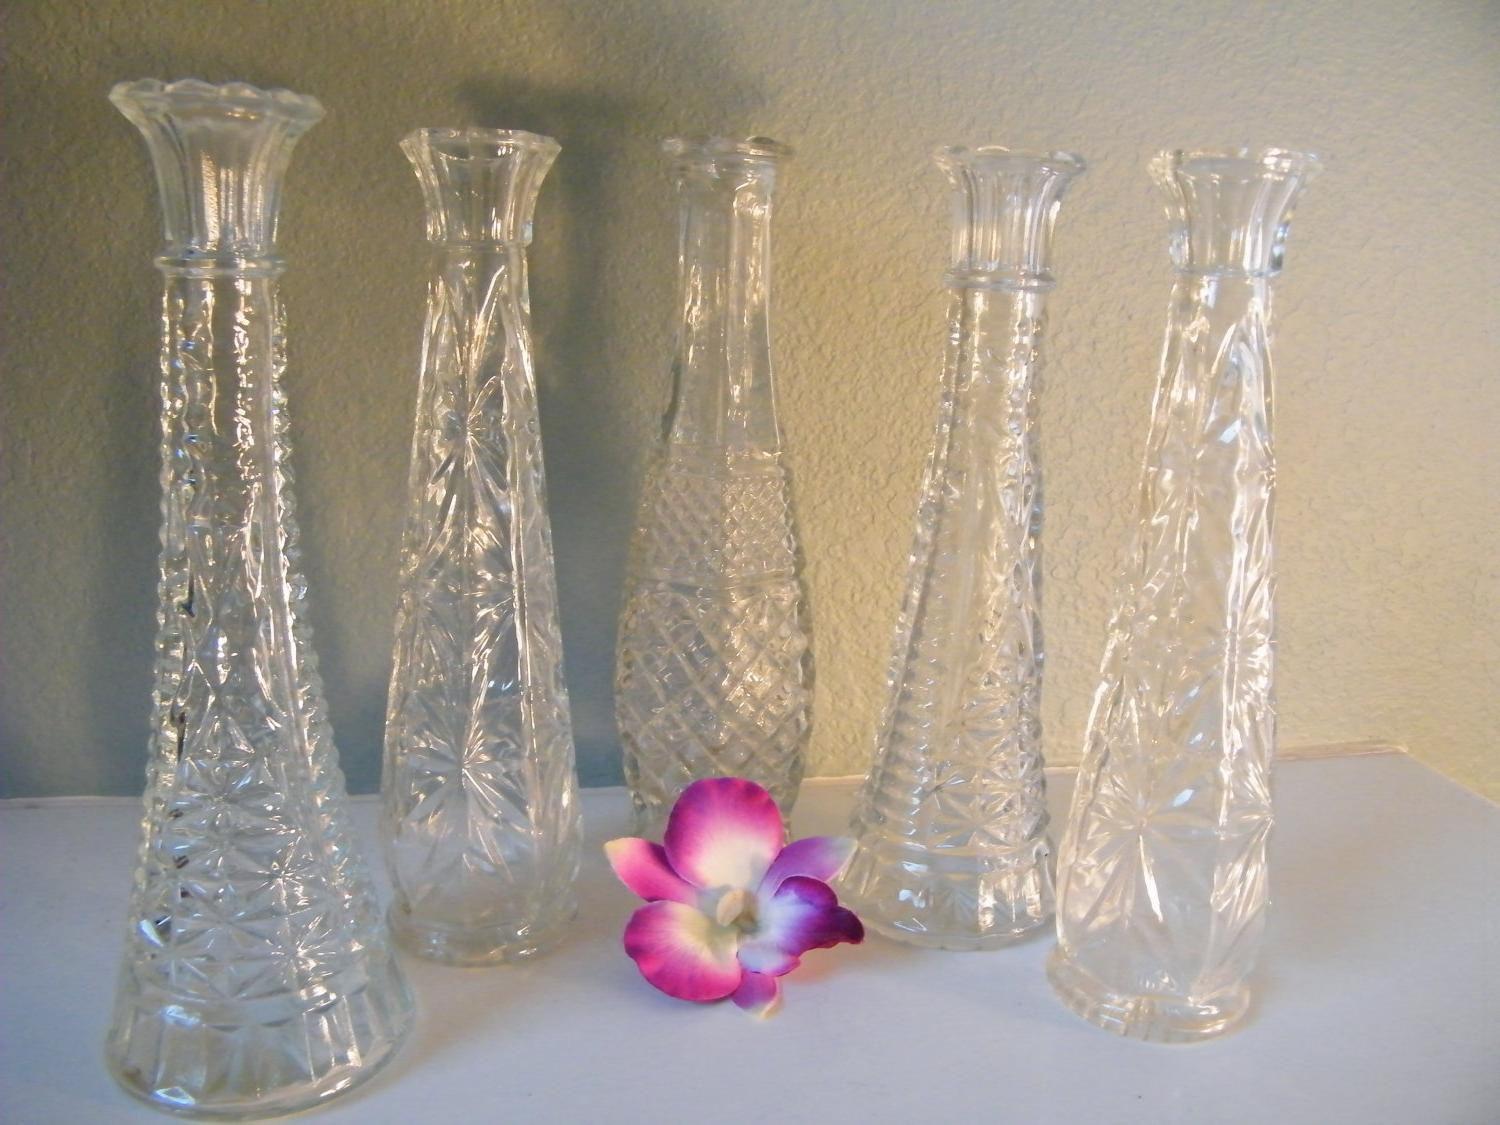 Vases-Wedding Reception Tables-Centerpiece-Vintage-Beach Wedding-Instant